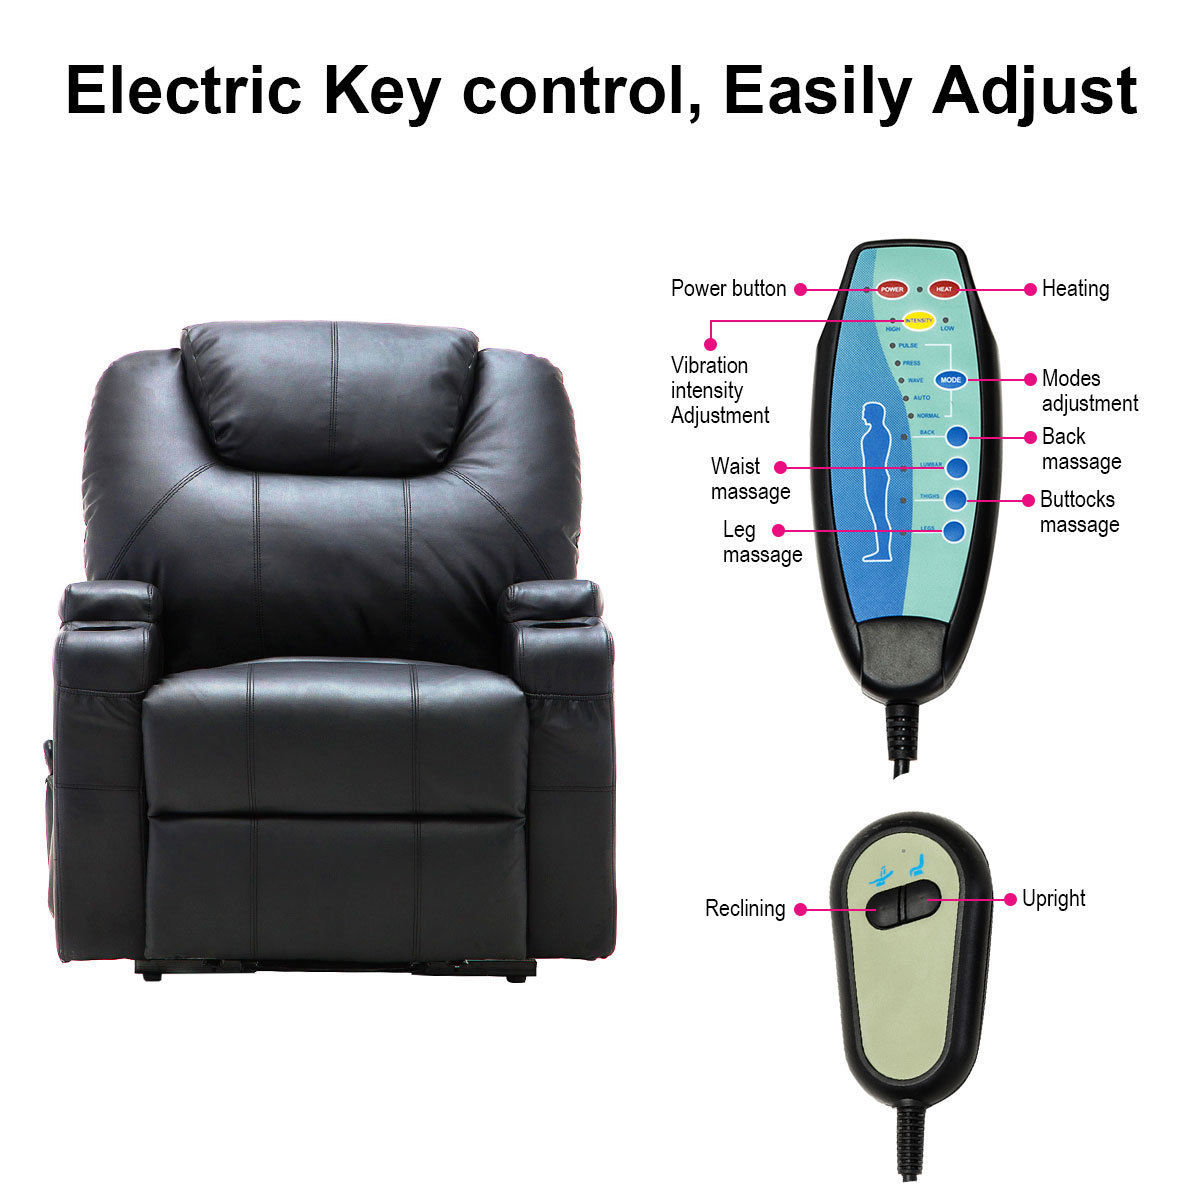 Costway Electric Lift Power Recliner Chair Heated Massage Sofa Lounge W/  Remote Control   Walmart.com